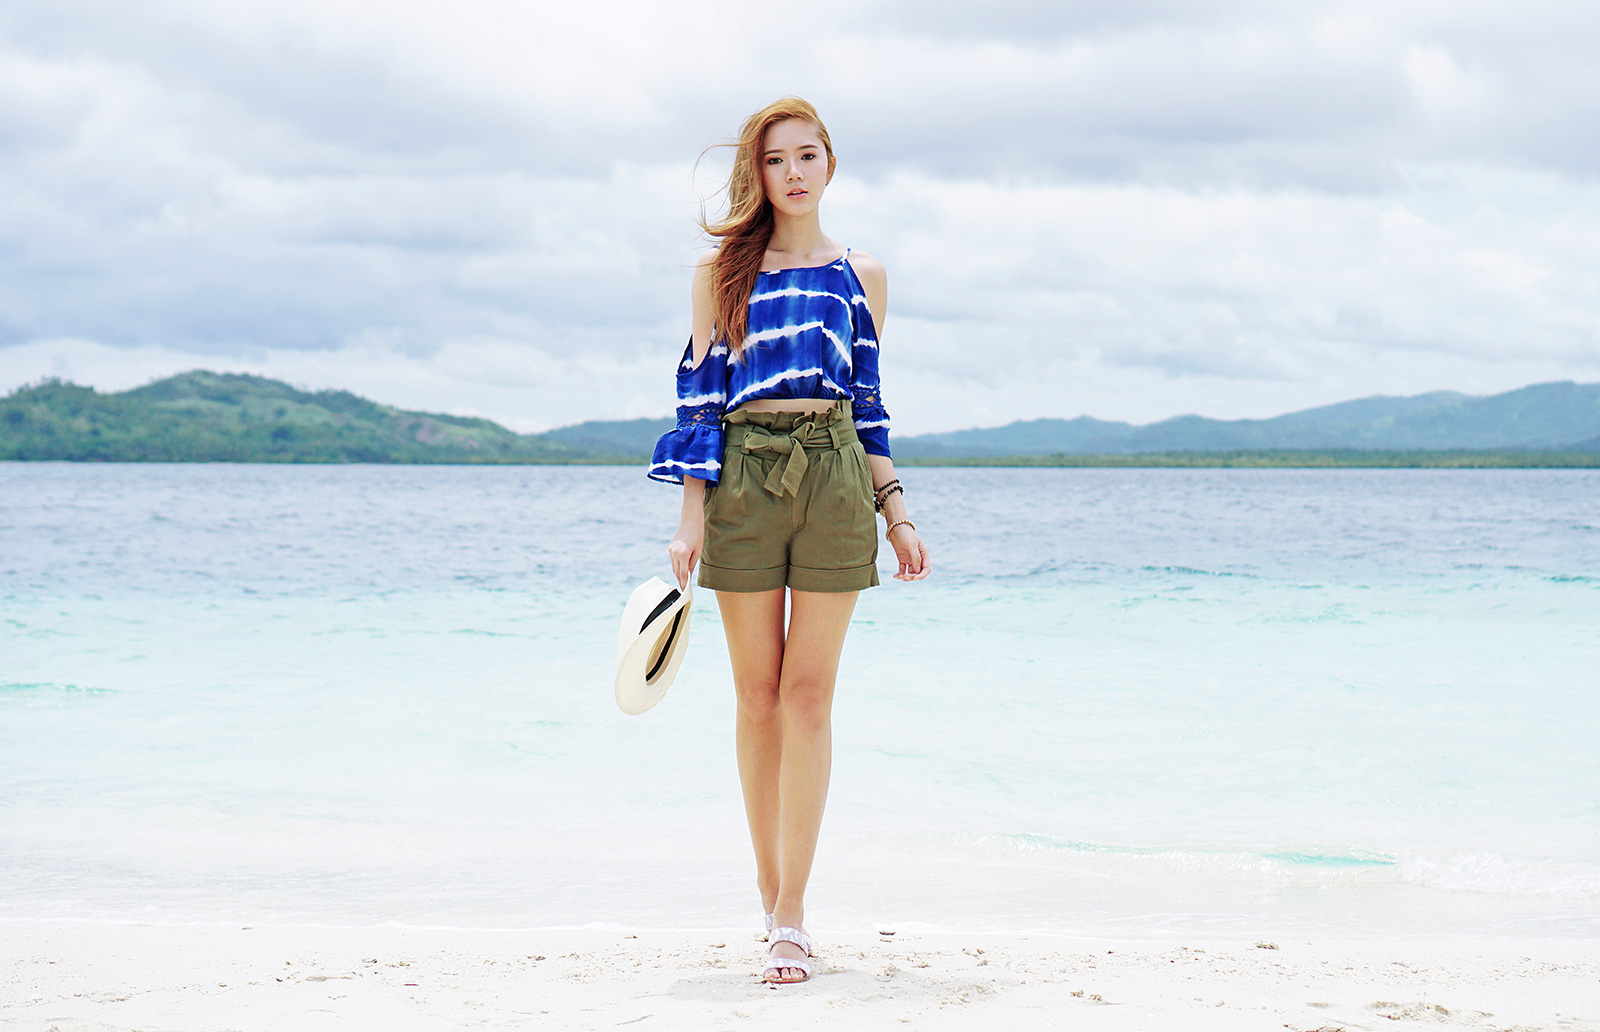 Exploring Masbate beaches in summer fashion - www.itscamilleco.com